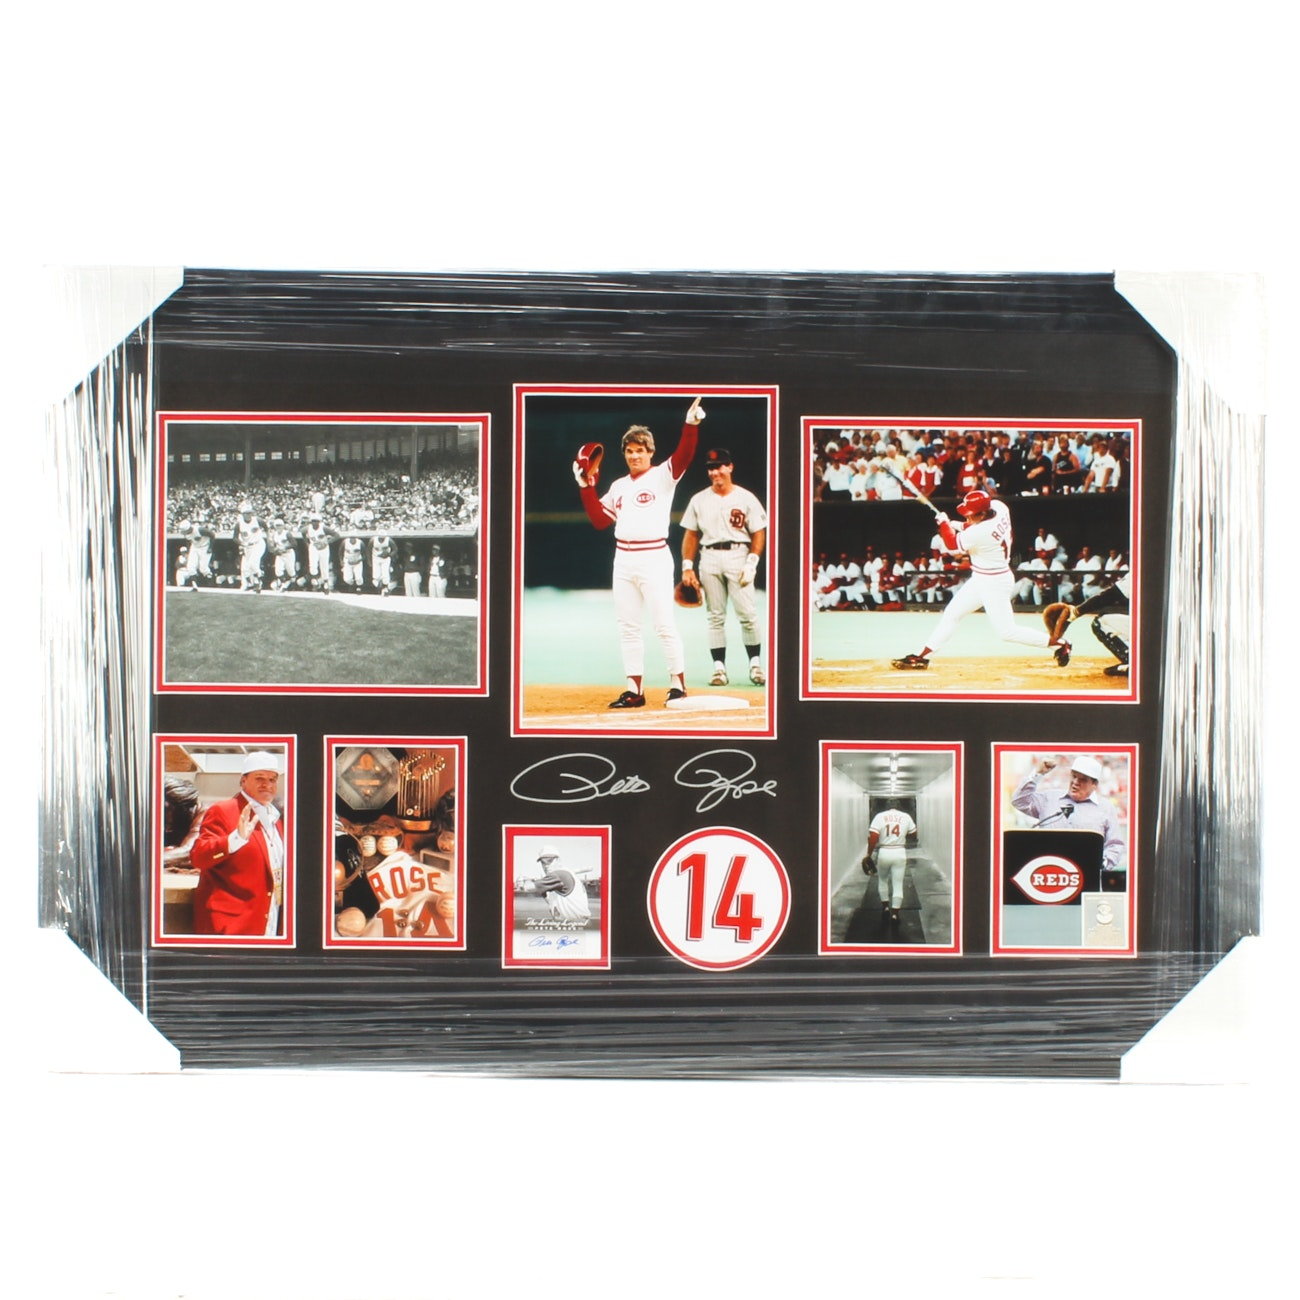 Pete Rose Signed Matted and Framed Baseball Collage COA